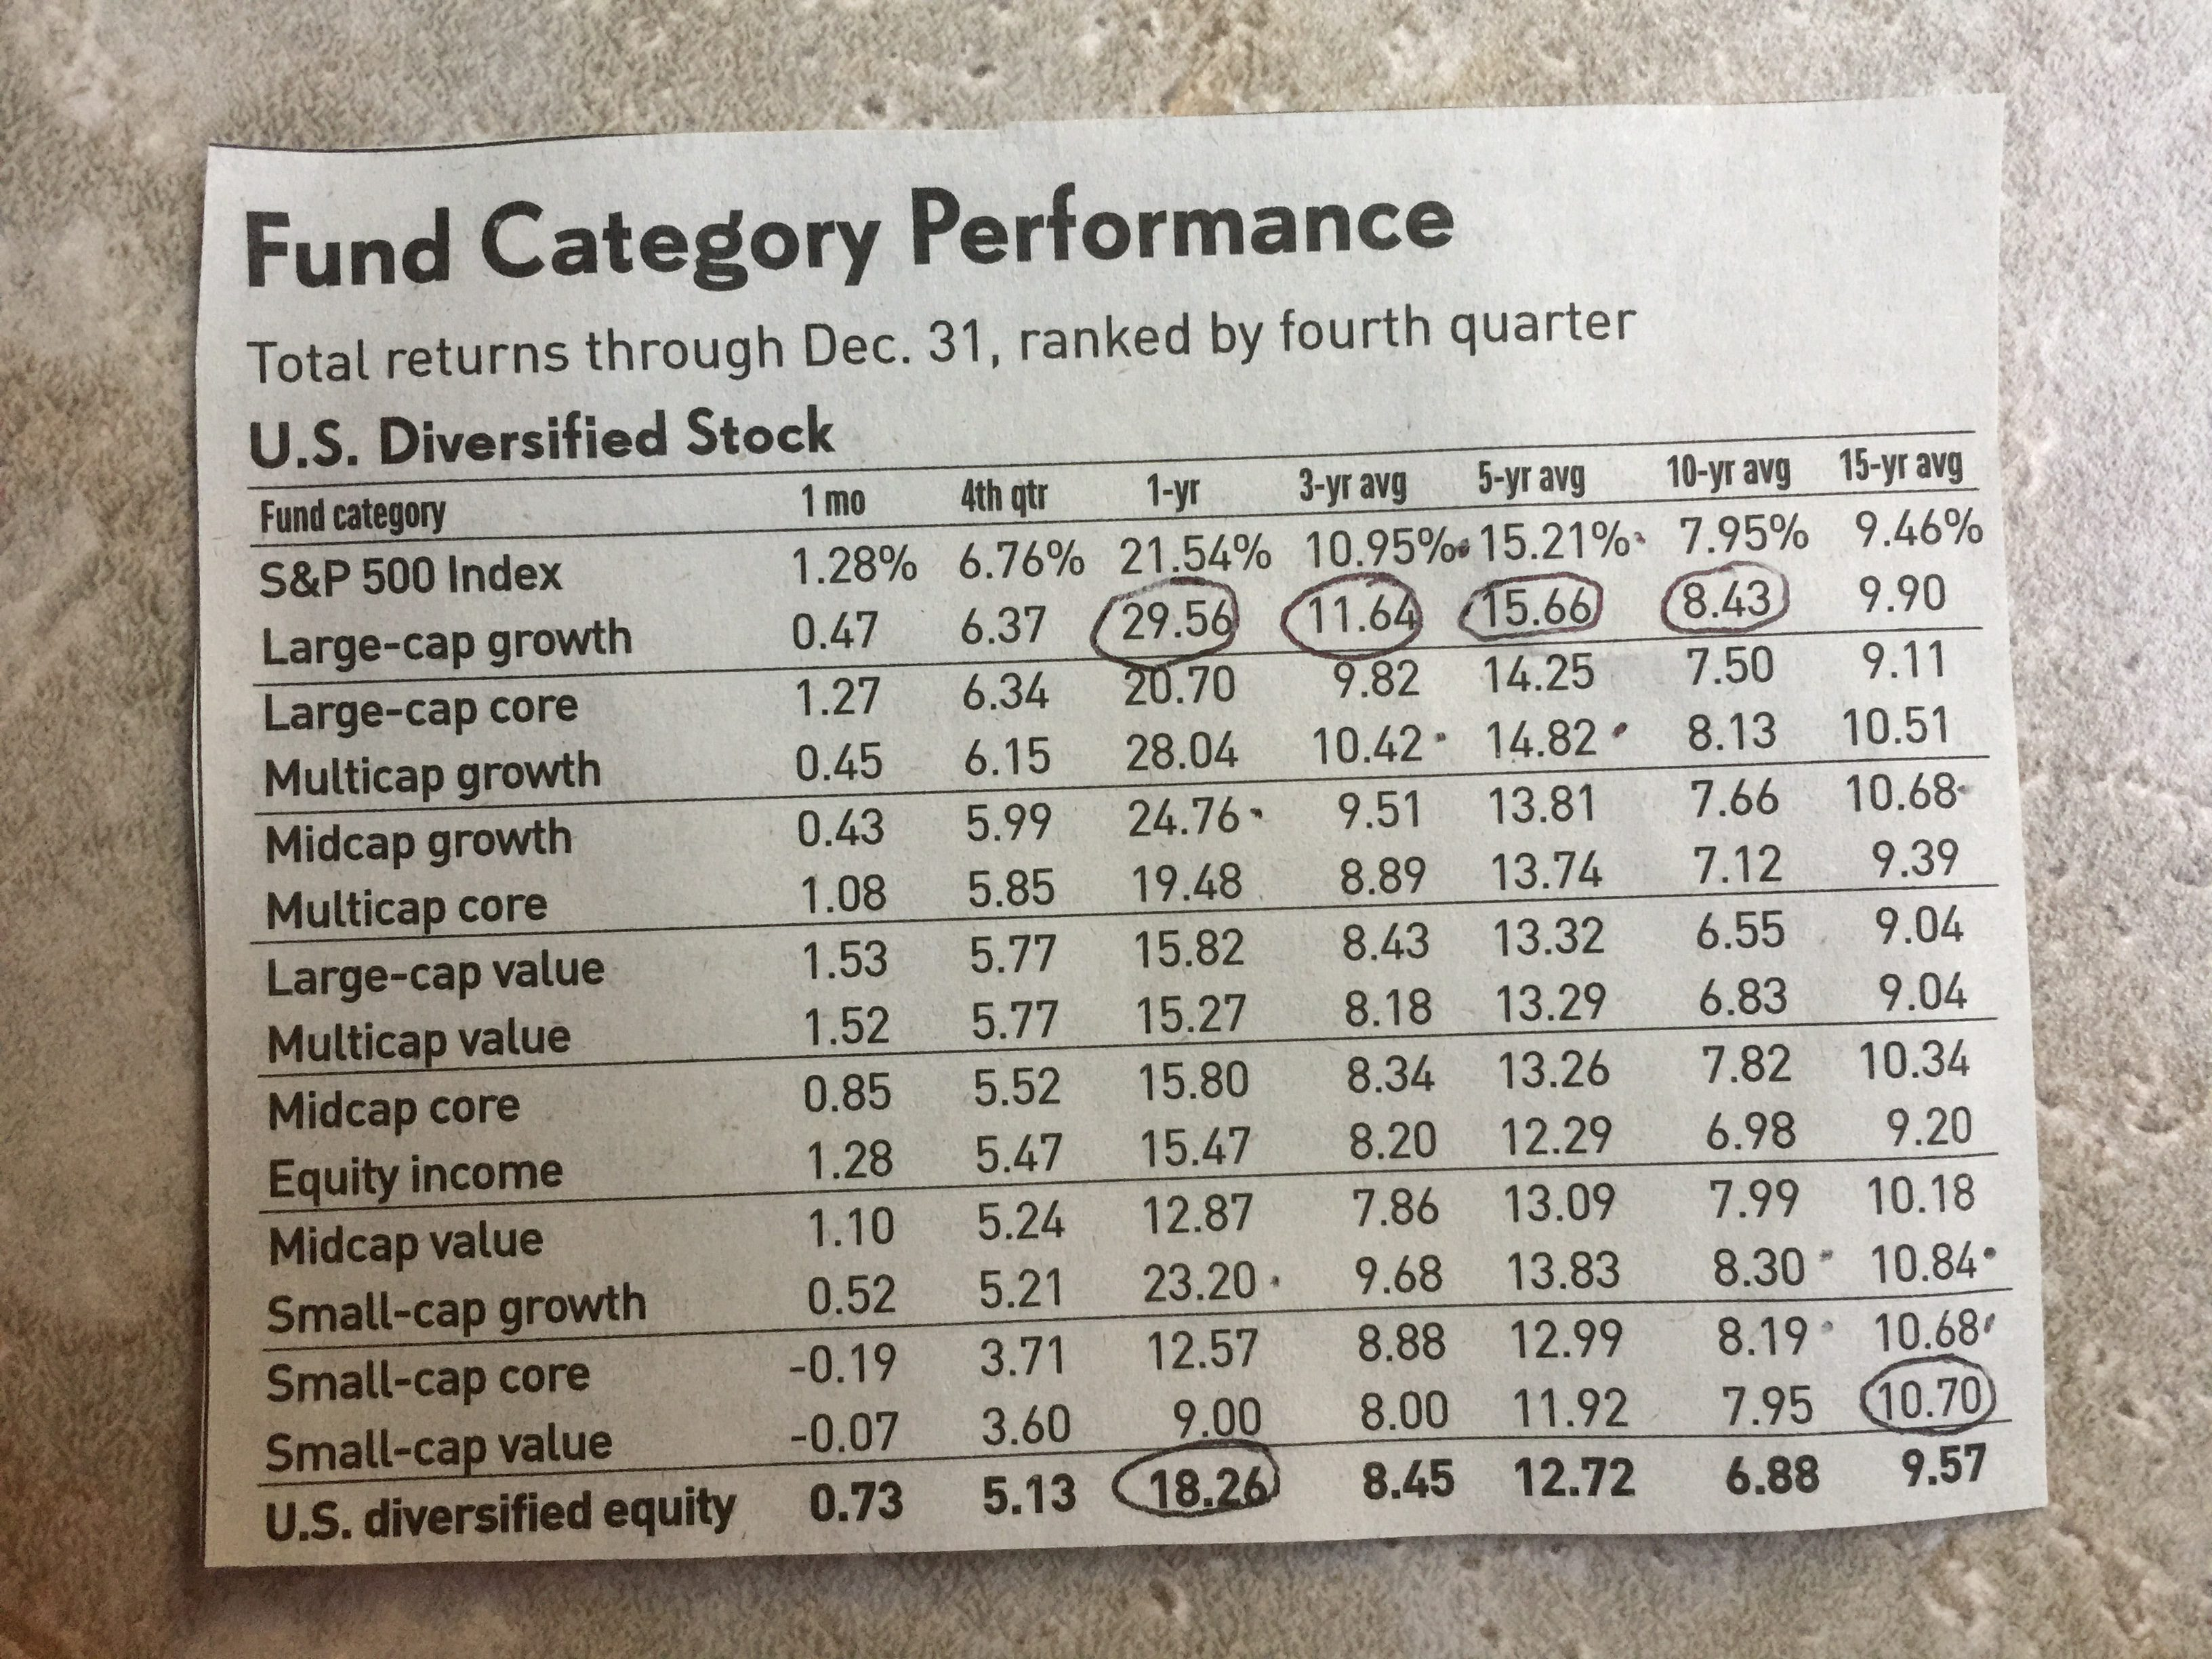 Fund Category Performance